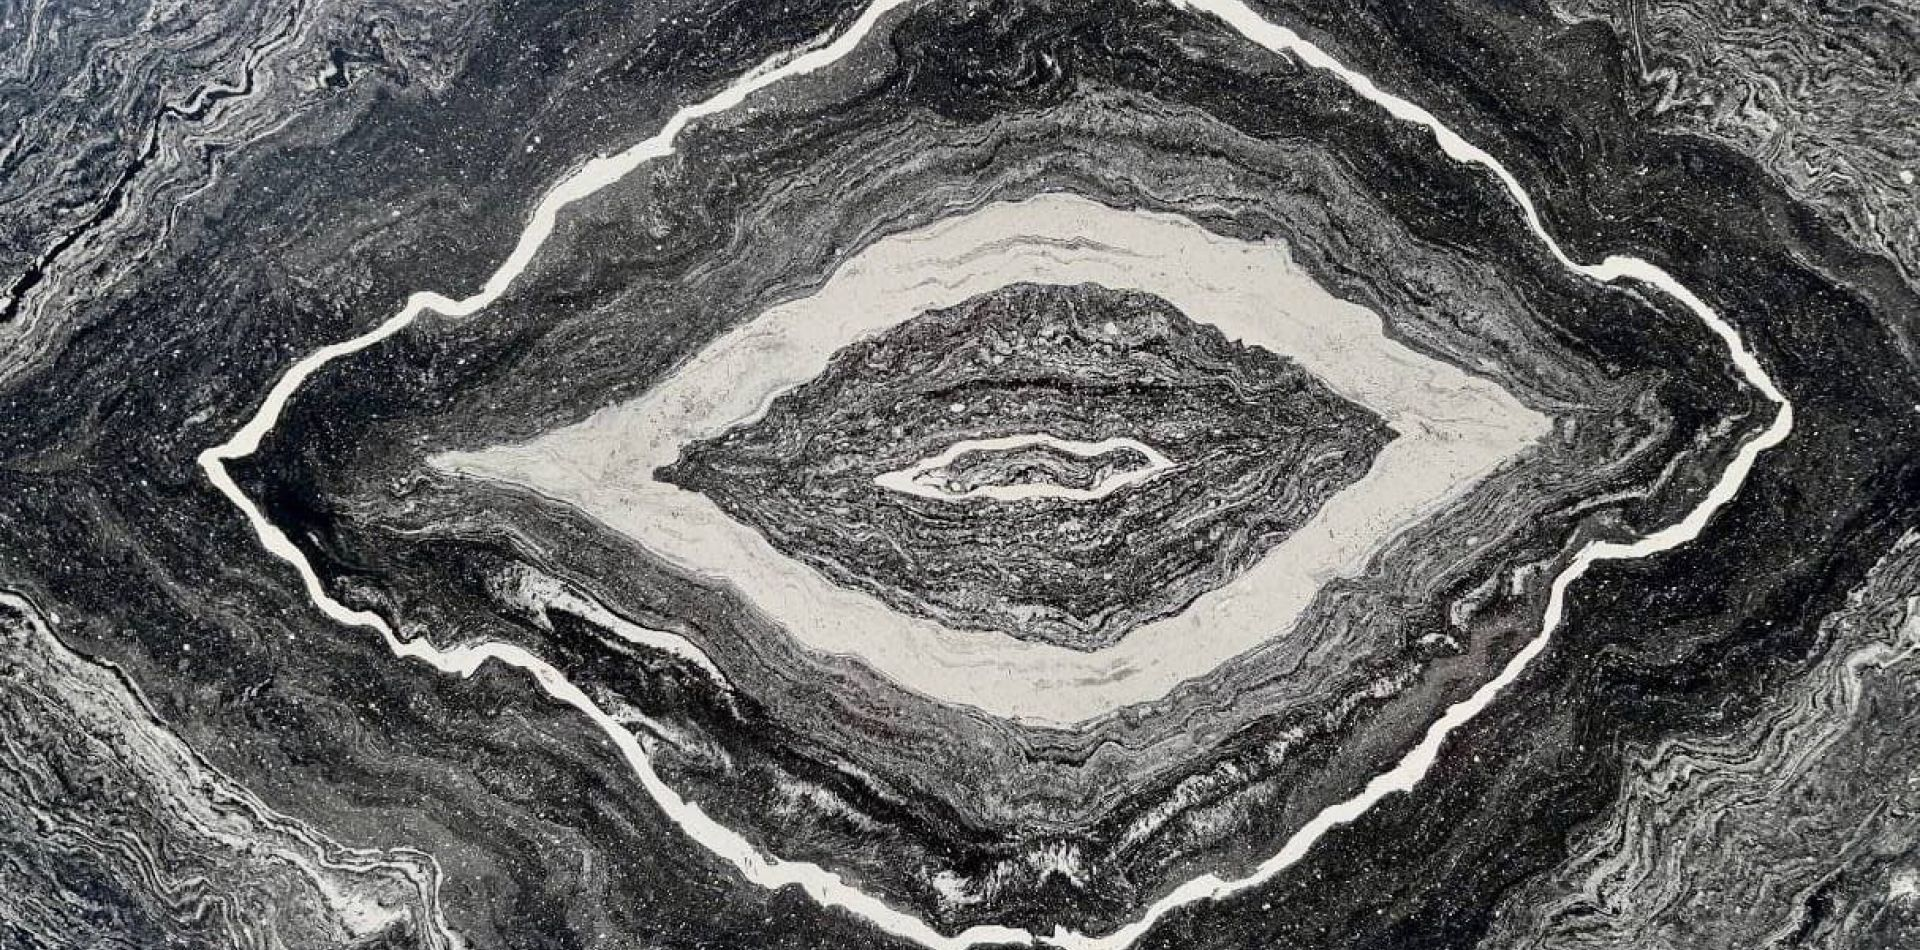 The effect of polished marble